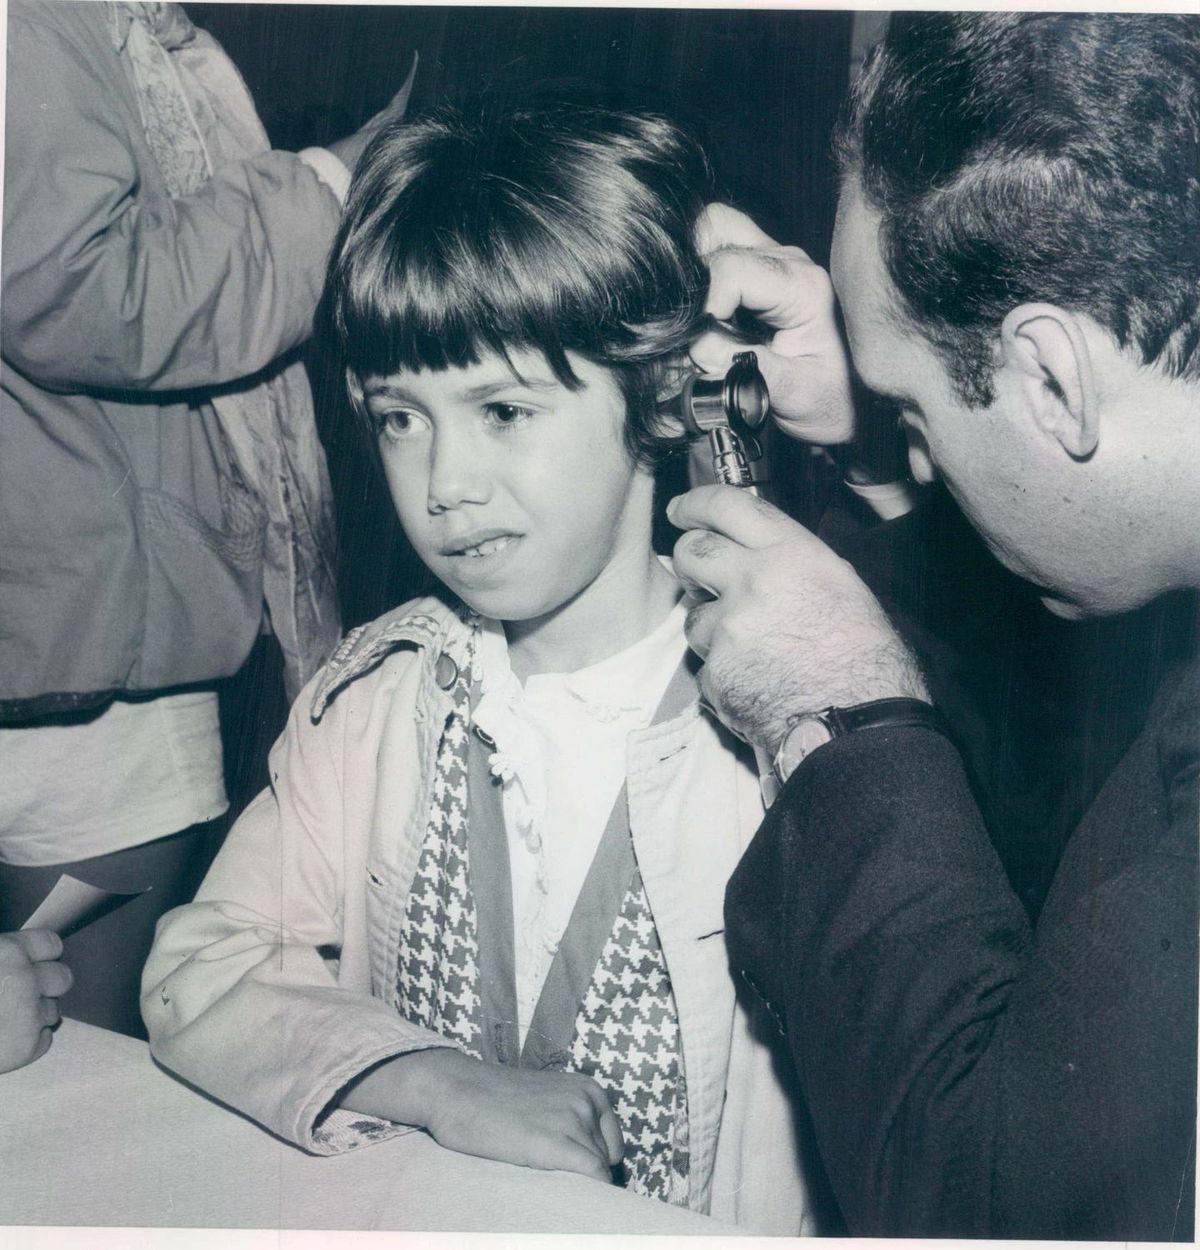 Dr. Benjamin Emanuel examines a 6-year-old girl in a pre-camp physical in 1962.